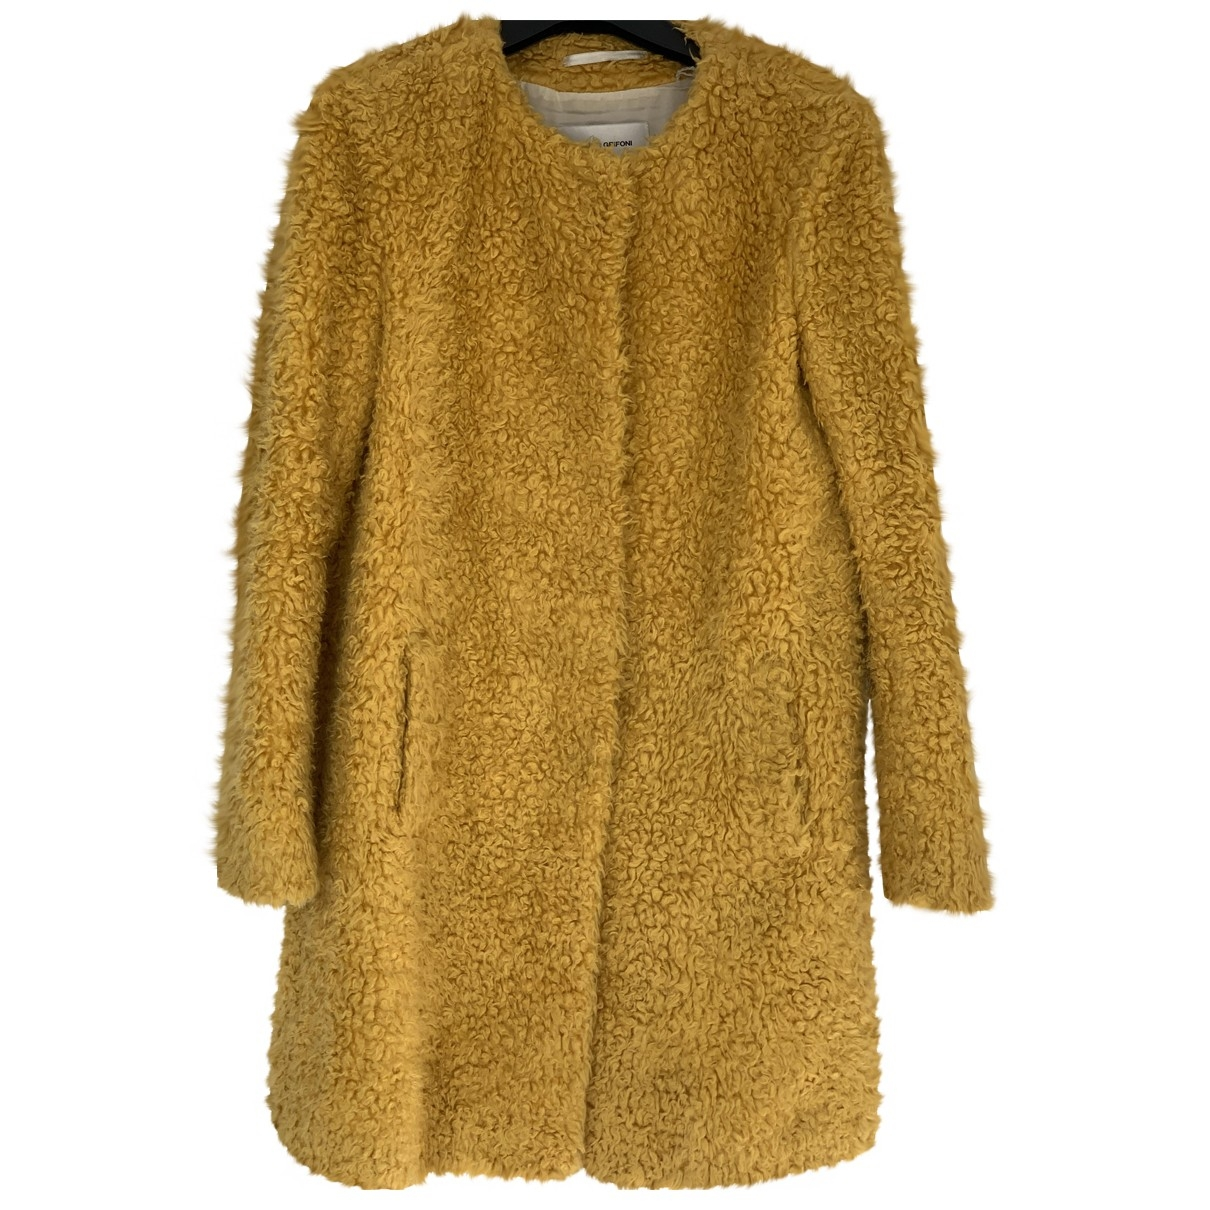 Mauro Grifoni \N Yellow coat for Women 40 IT